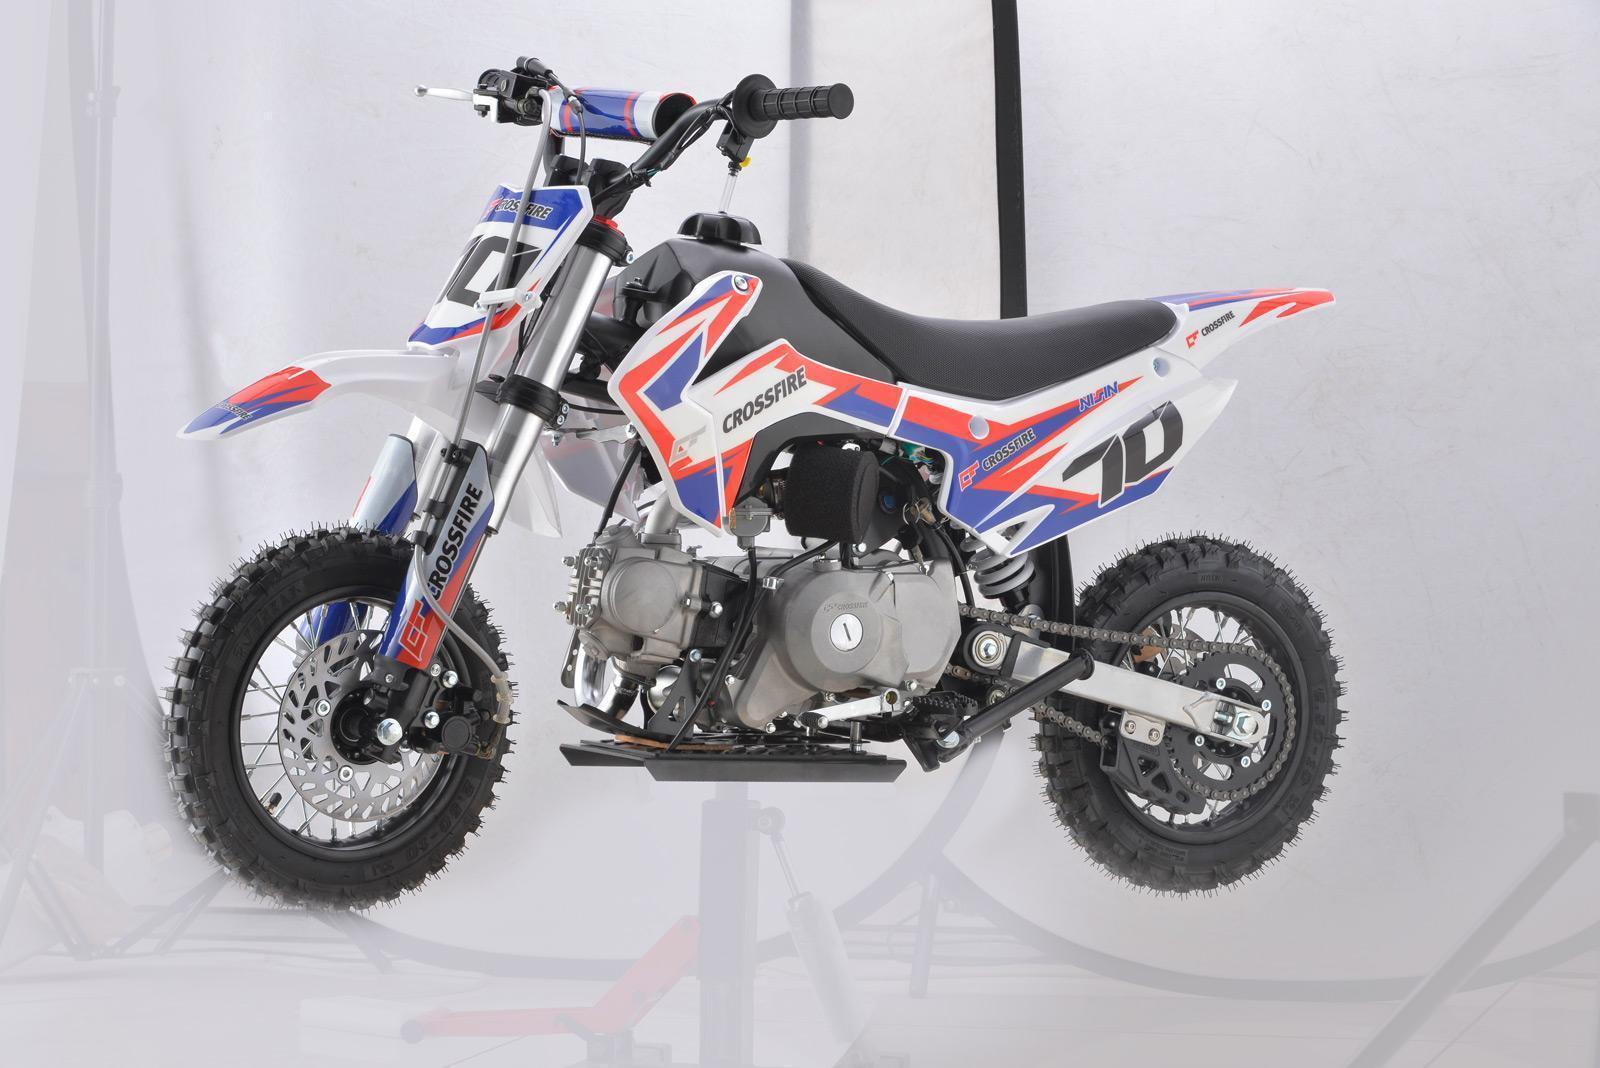 ALL NEW 2020 Crossfire CF70-2020 - dirt bikes store dalby